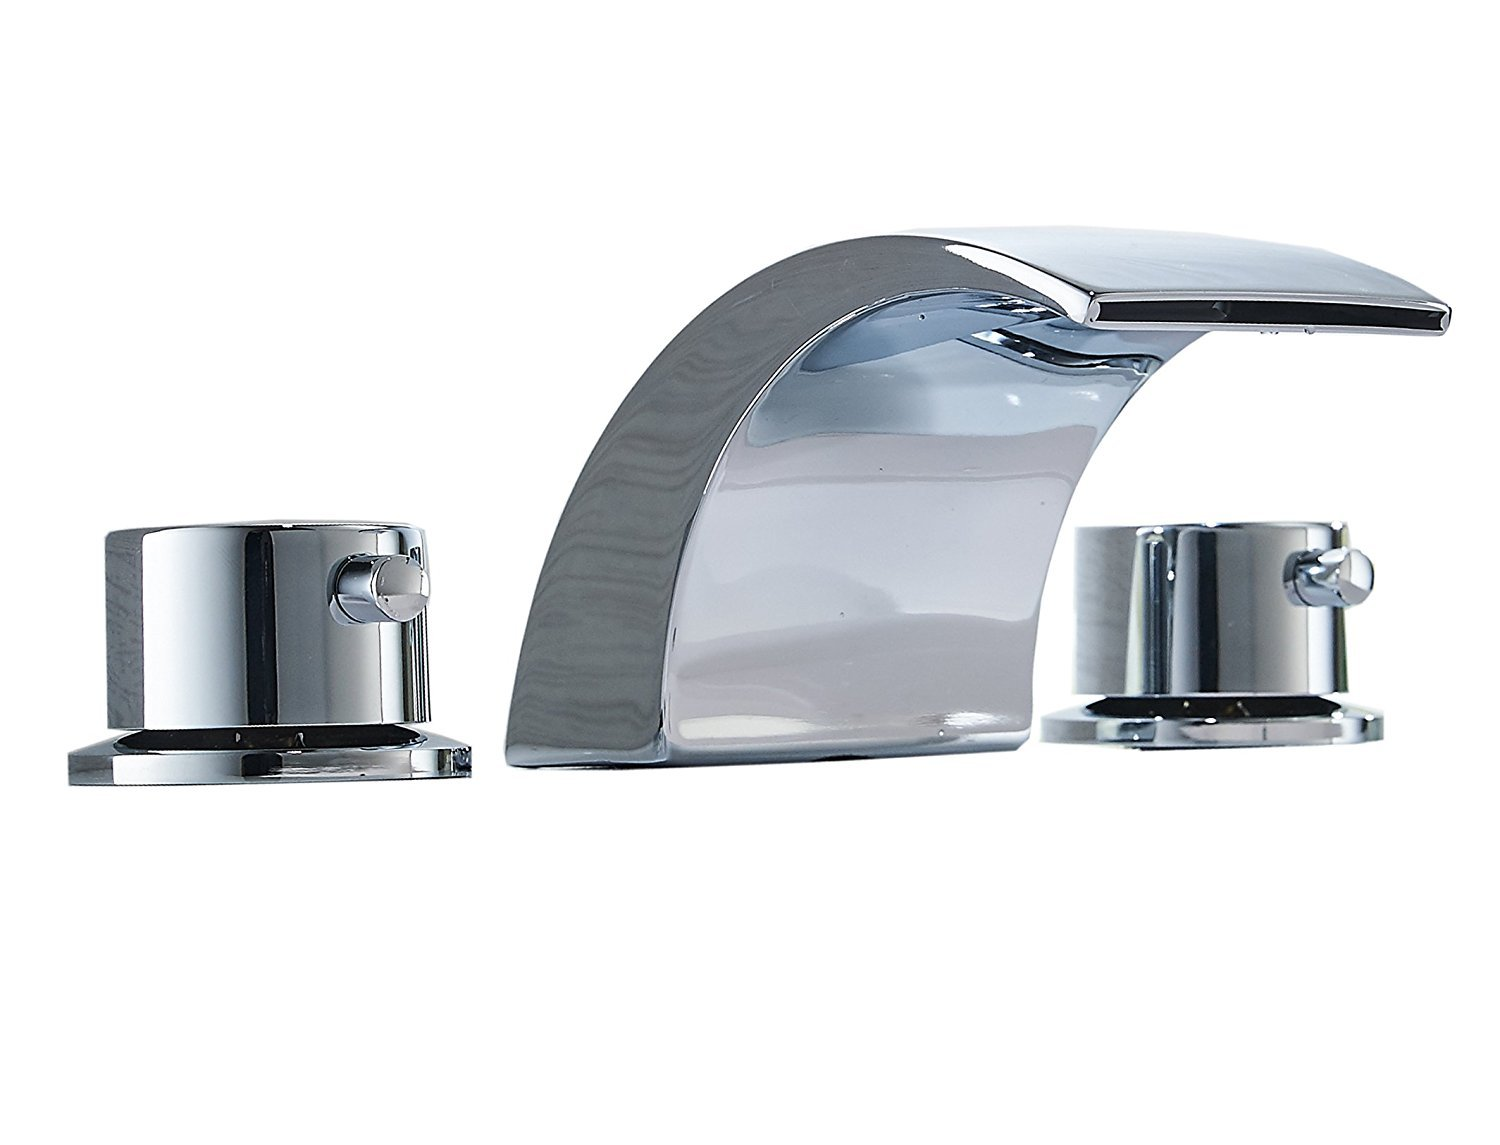 Homevacious Widespread Bathroom Sink Faucet Led Light Waterfall Chrome Bath Tub 8-16 inch 3 Holes 2 Handles Contemporary Lavatory Modern Faucets Basin Deck Mount Water Flow Powered Mixer Tap Hose